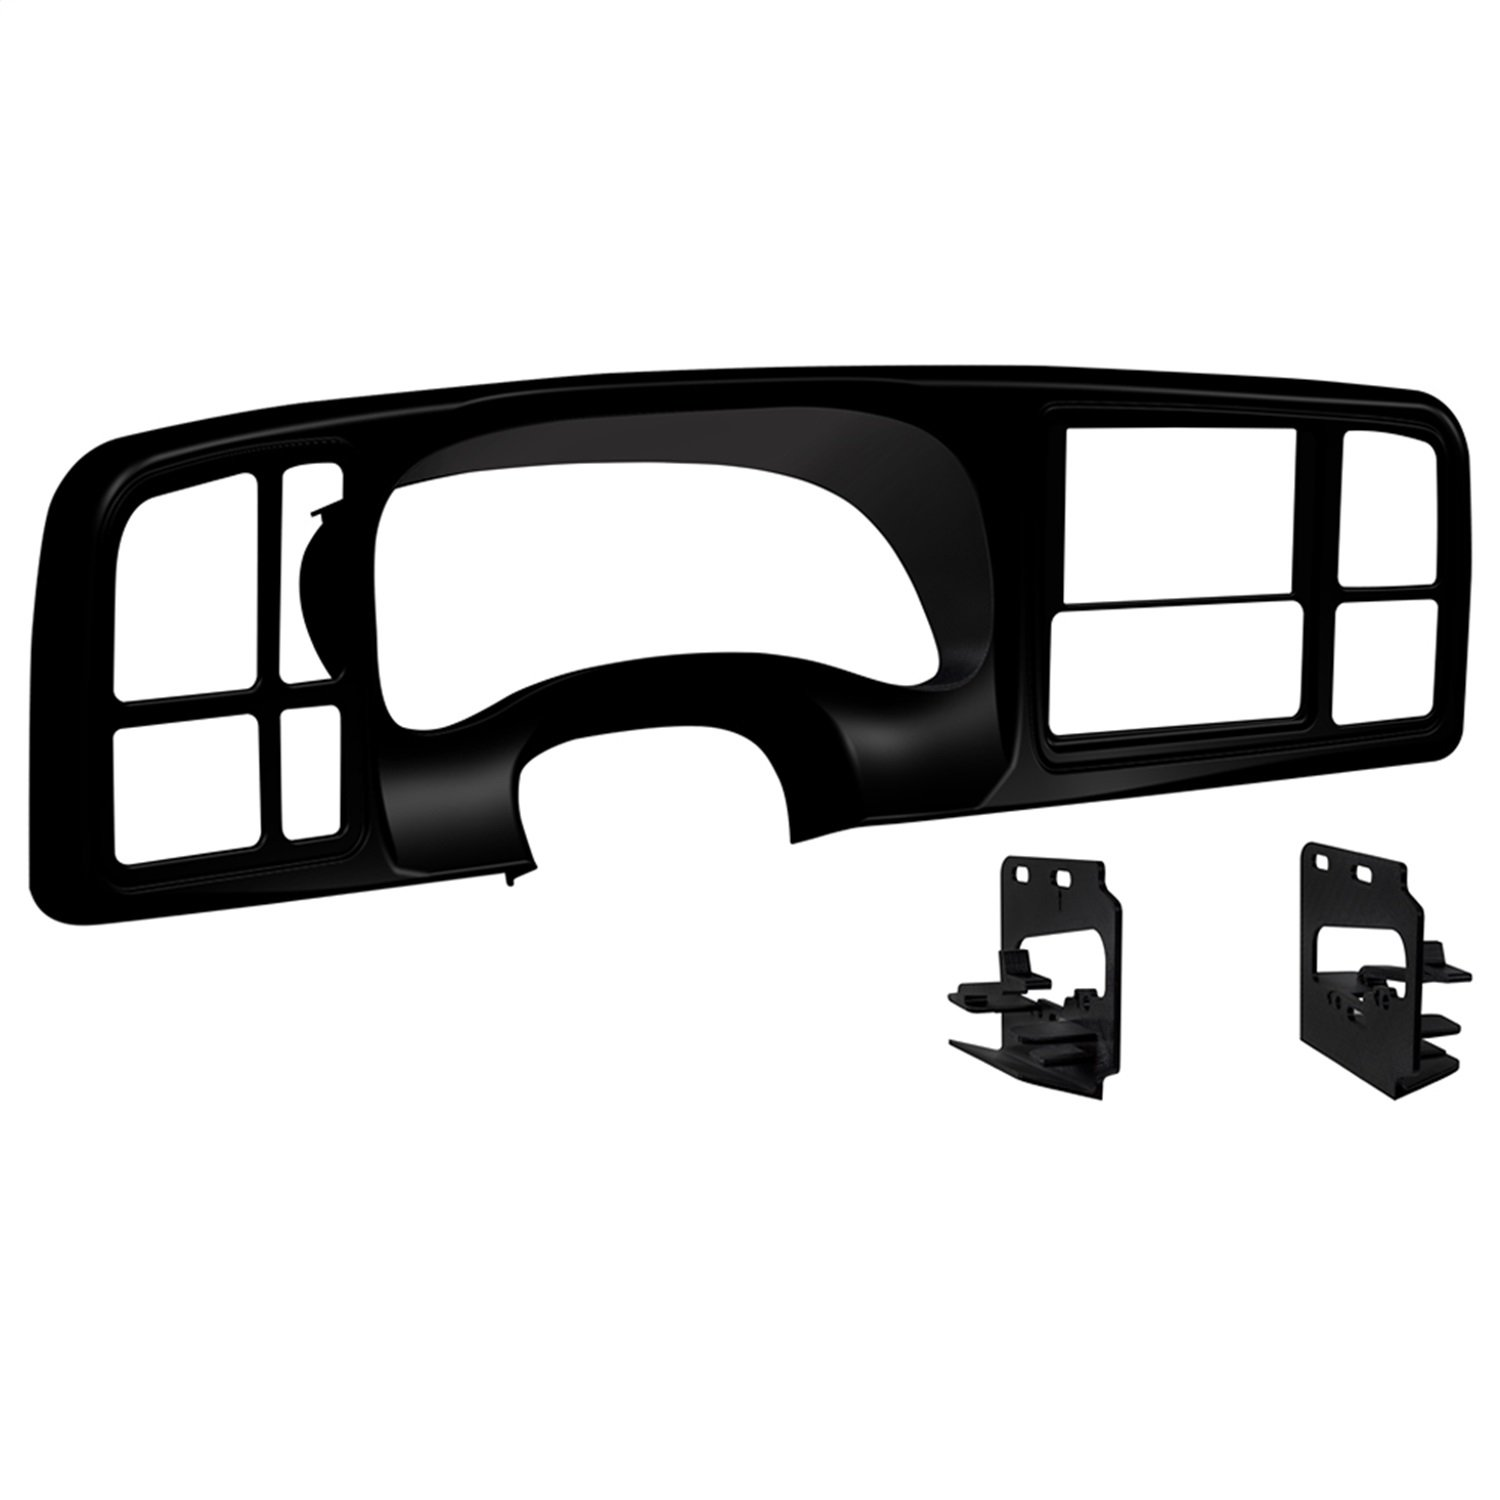 Metra DP-3002B Double DIN Dash Kit for 1999 - 2002 GM Full-Size Trucks/SUV's (Matte Black)